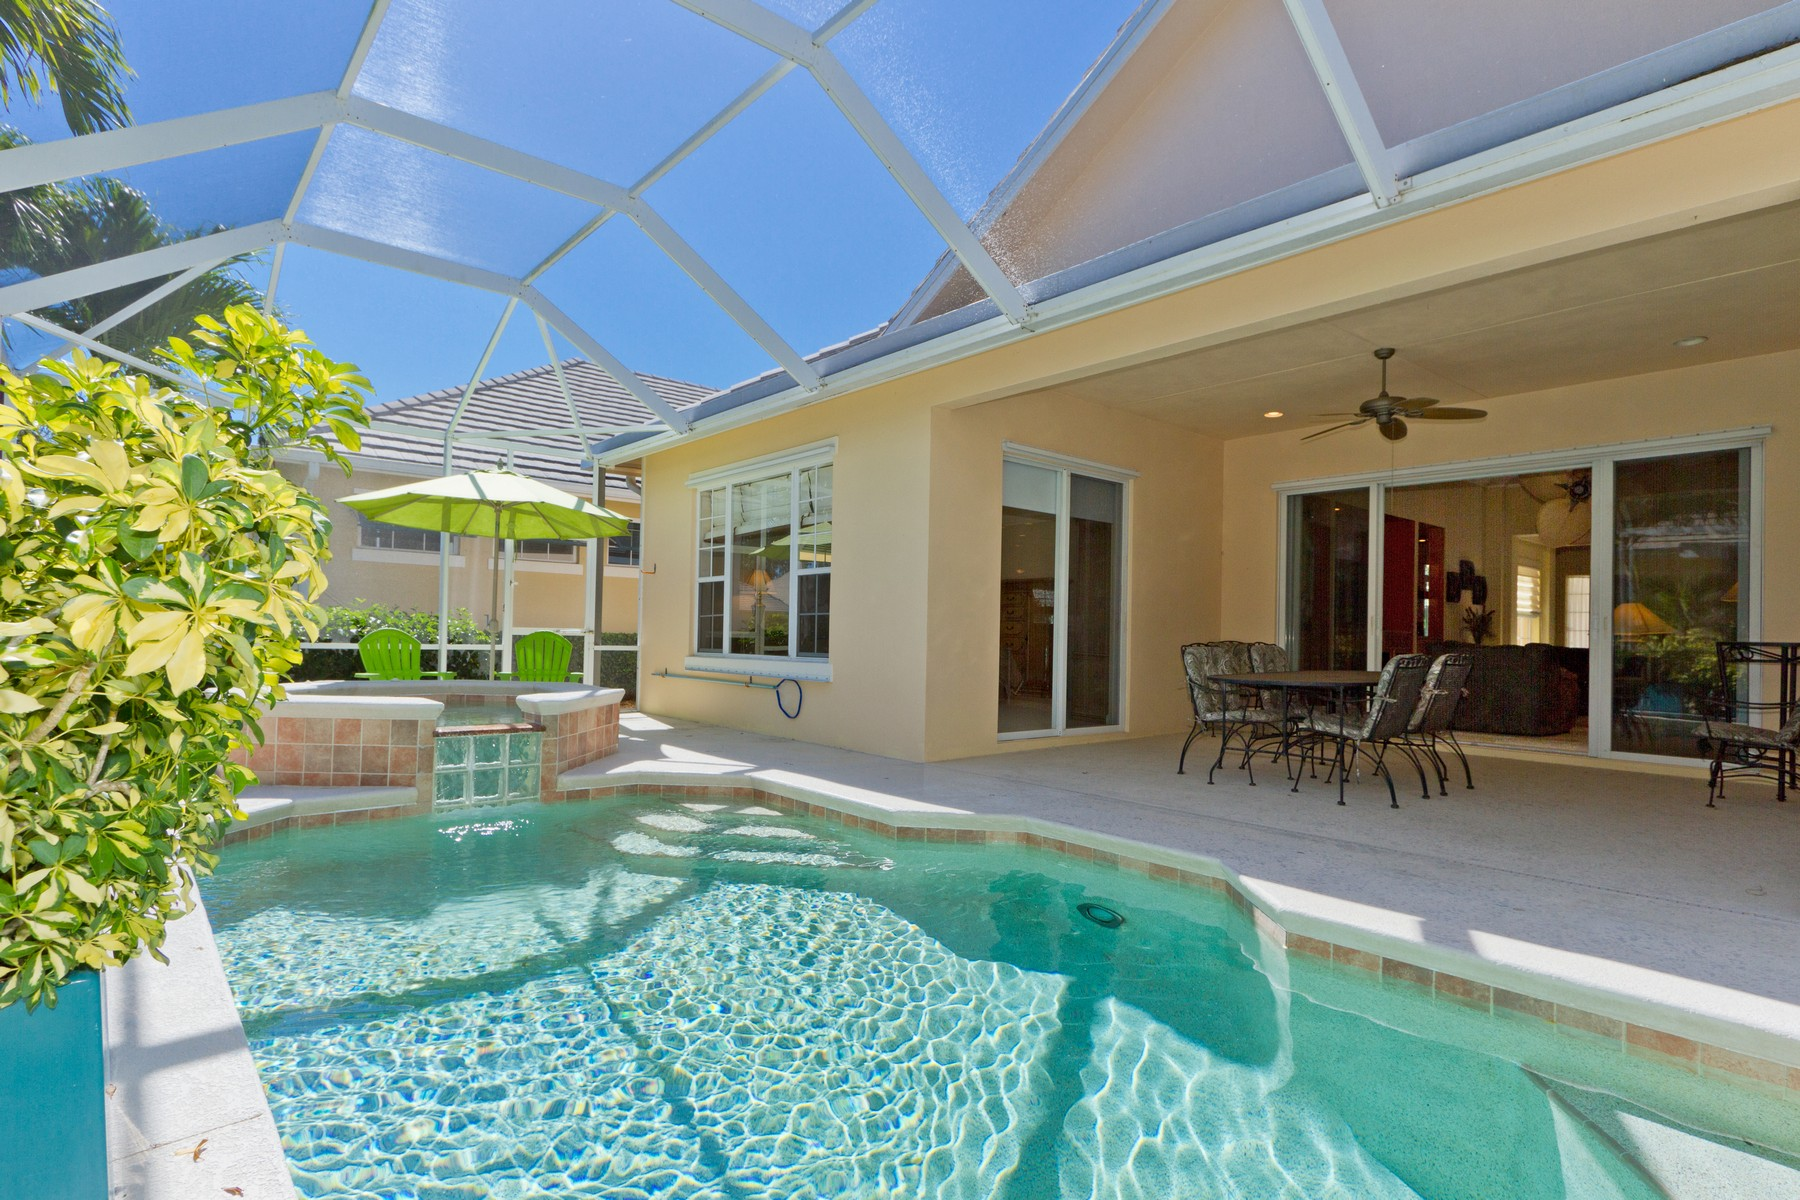 Property for Sale at Elegant Island Design and Architecture 2070 Indian Summer Ln Vero Beach, Florida 32963 United States